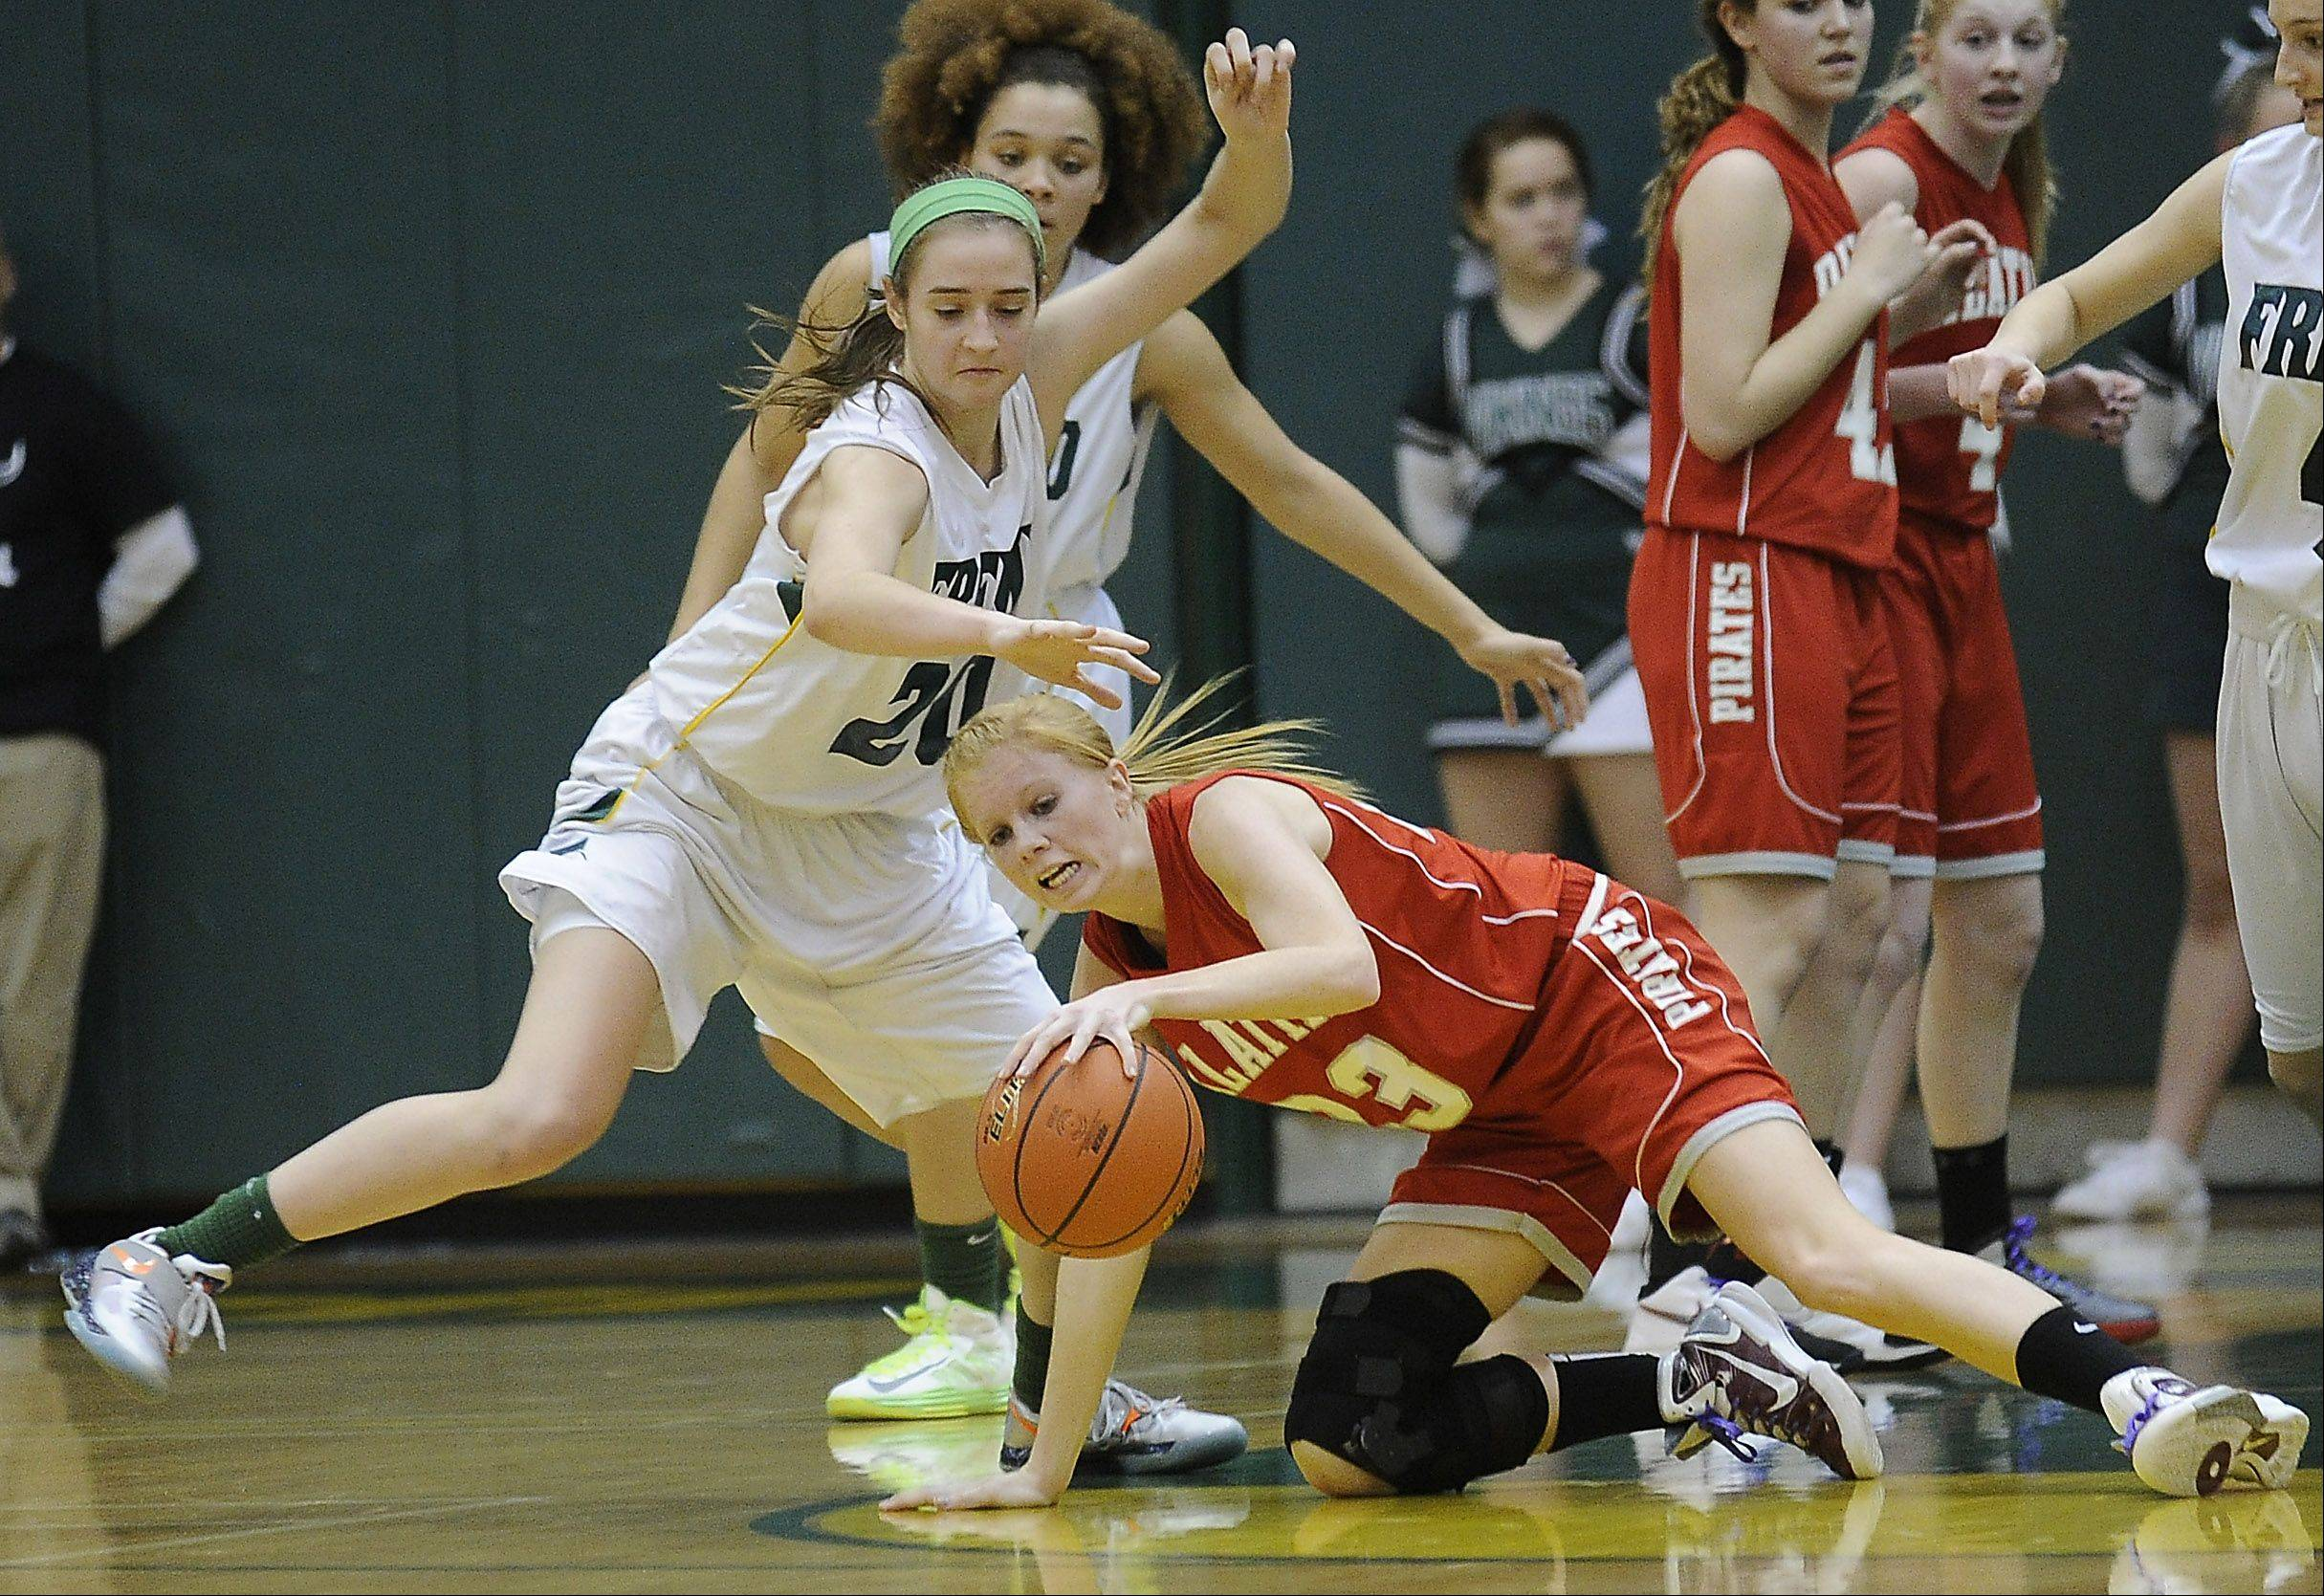 Palatine's McKenzie Wiedemann struggles to control the ball despite pressure from Fremd's defense Friday.